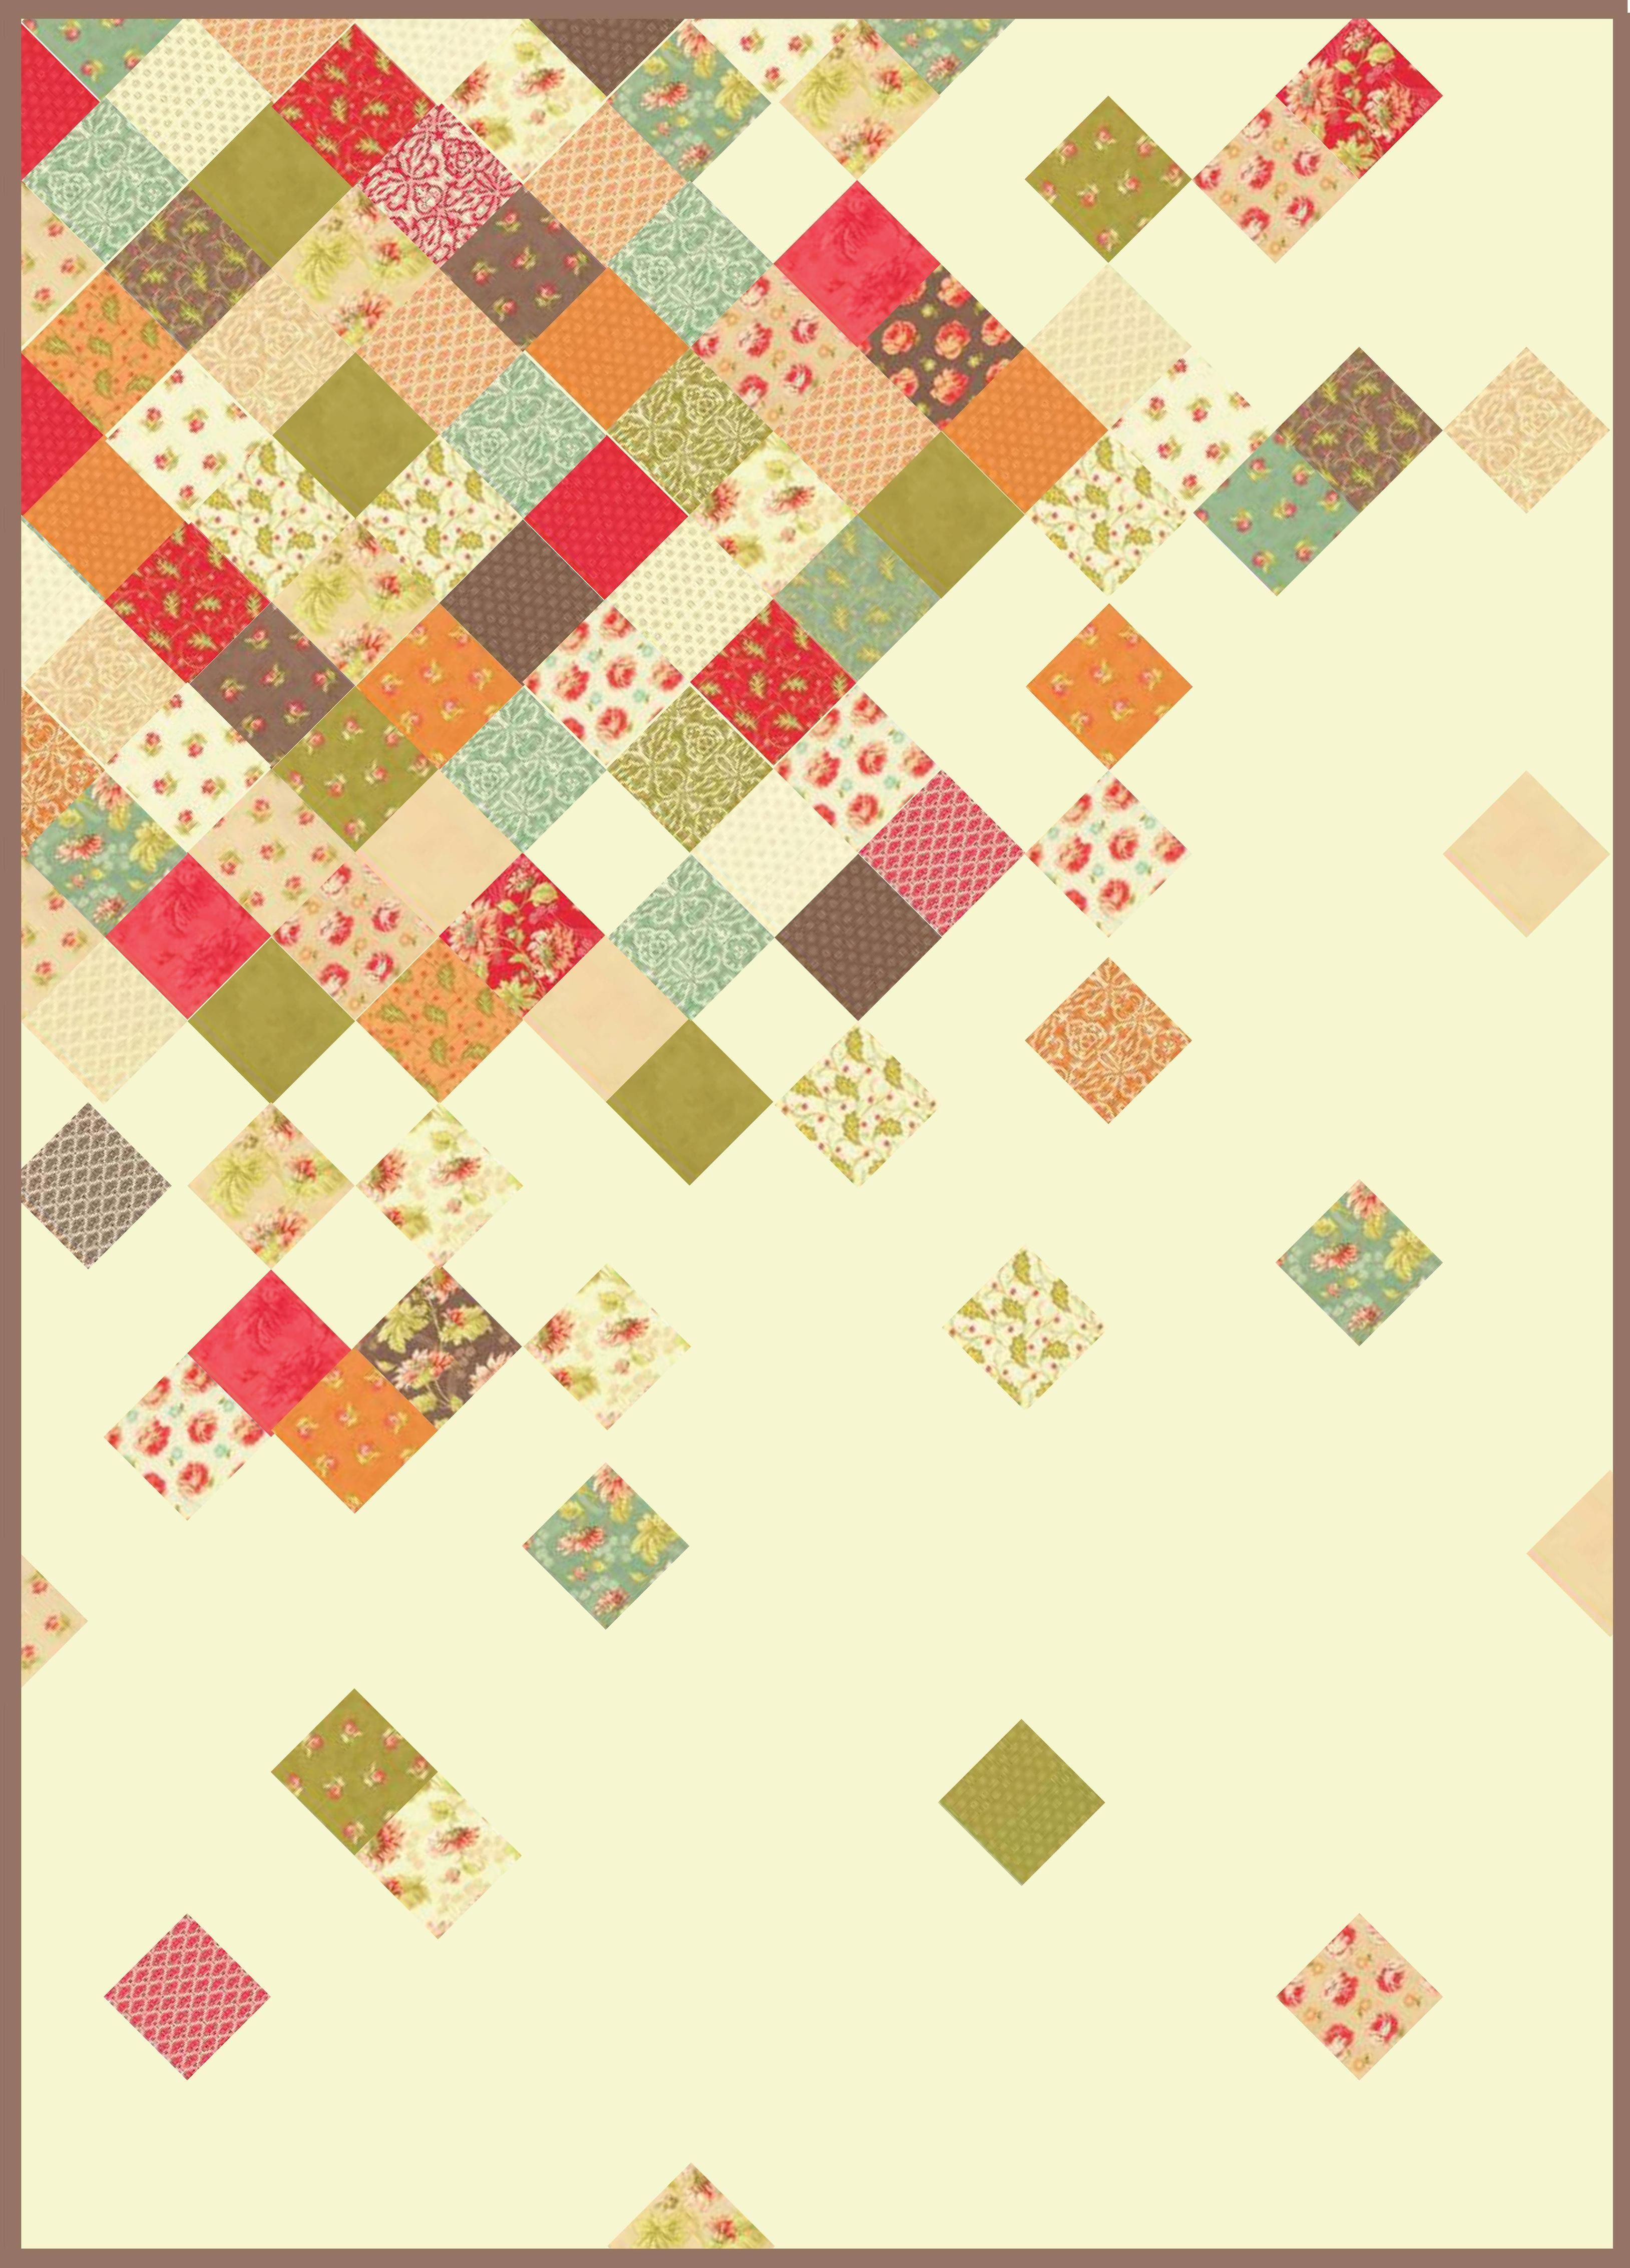 charm quilt ideas   Charm quilt, Charm pack and Patchwork